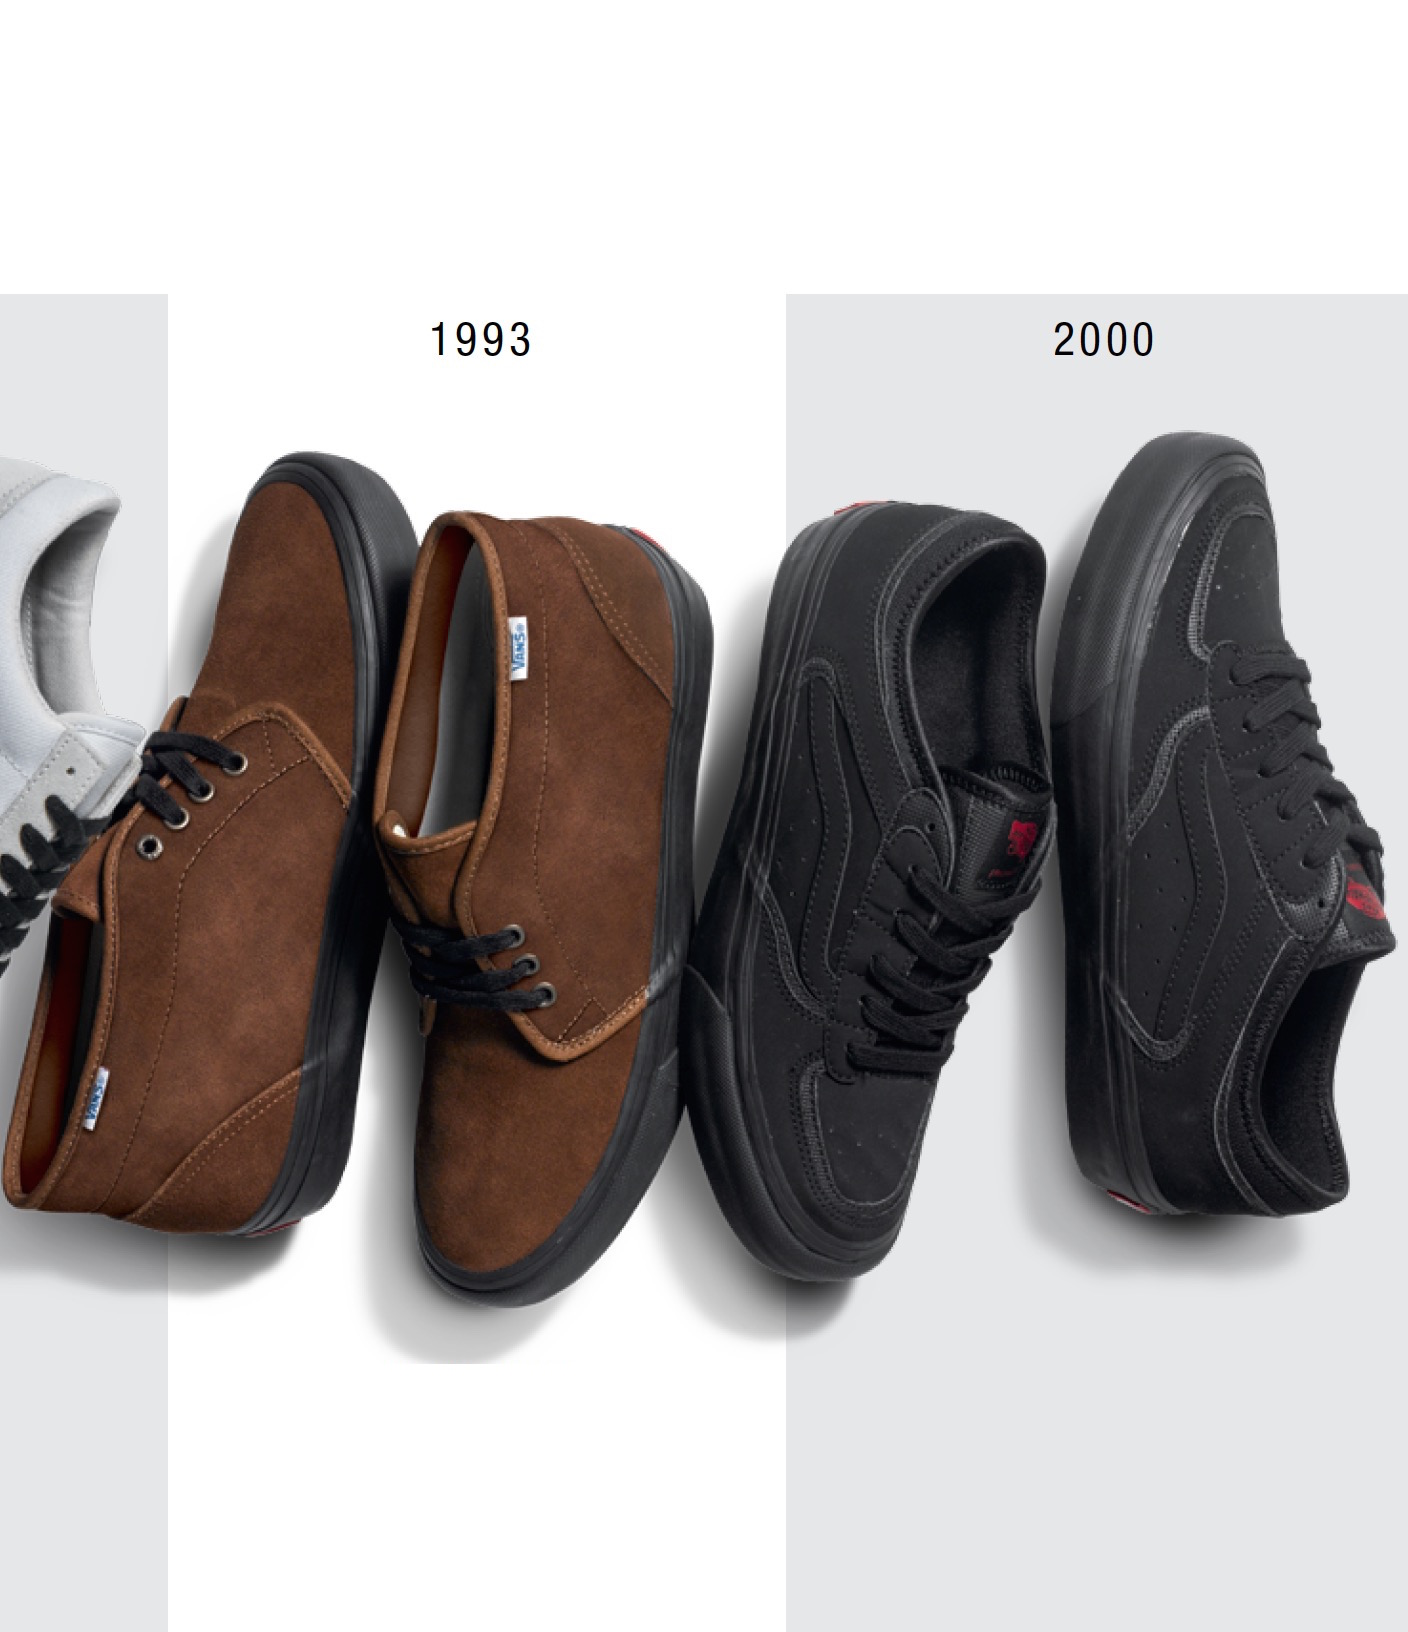 1a661089d0 Vans 50th Anniversary Pro Classics Collection — strictly waffles.